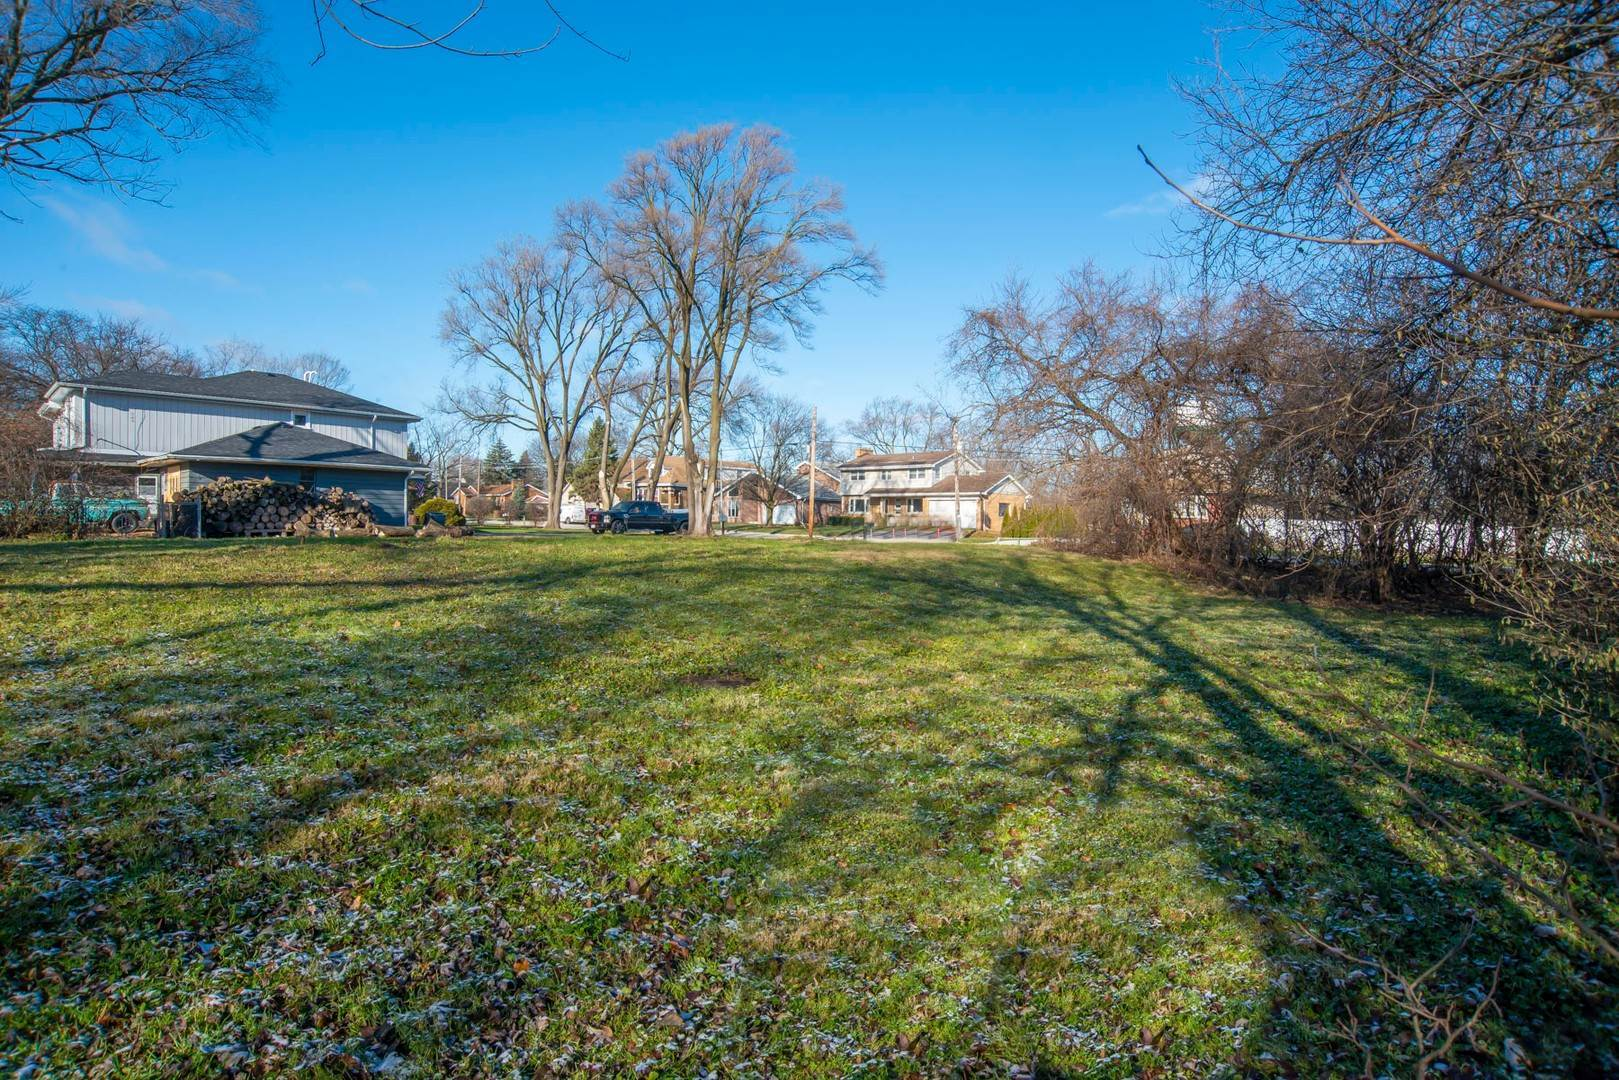 Land for Sale at 9609 W 57th Street Countryside, Illinois 60525 United States